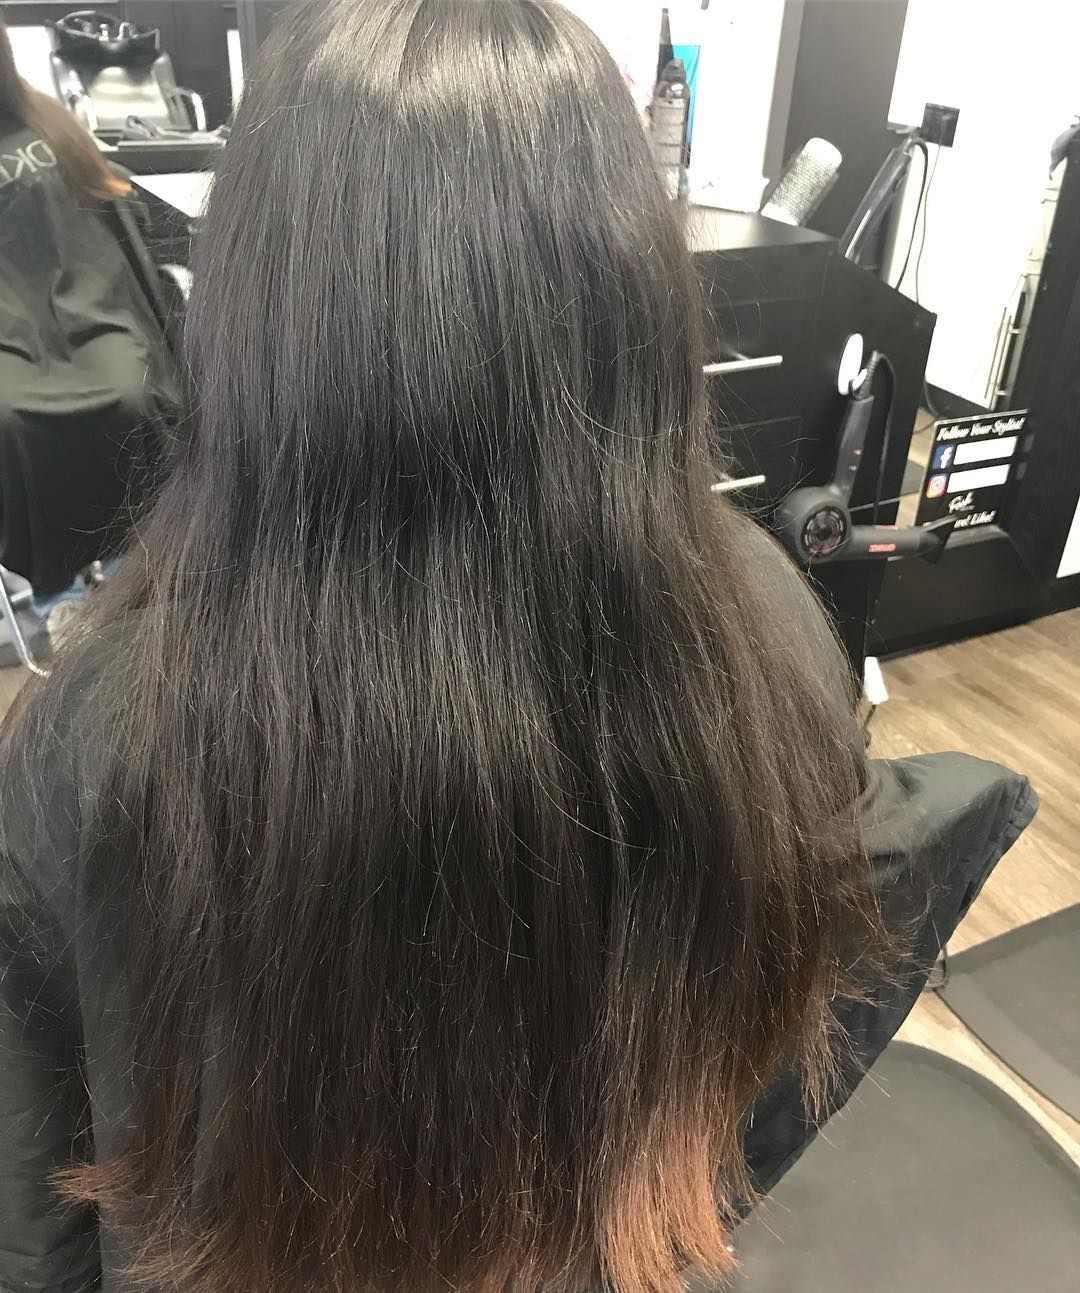 New The 10 Best Hairstyles With Pictures Hallelujur For Amazing Balayage Results On Natural Hair Instead Hair Styles Cool Hairstyles Natural Hair Styles